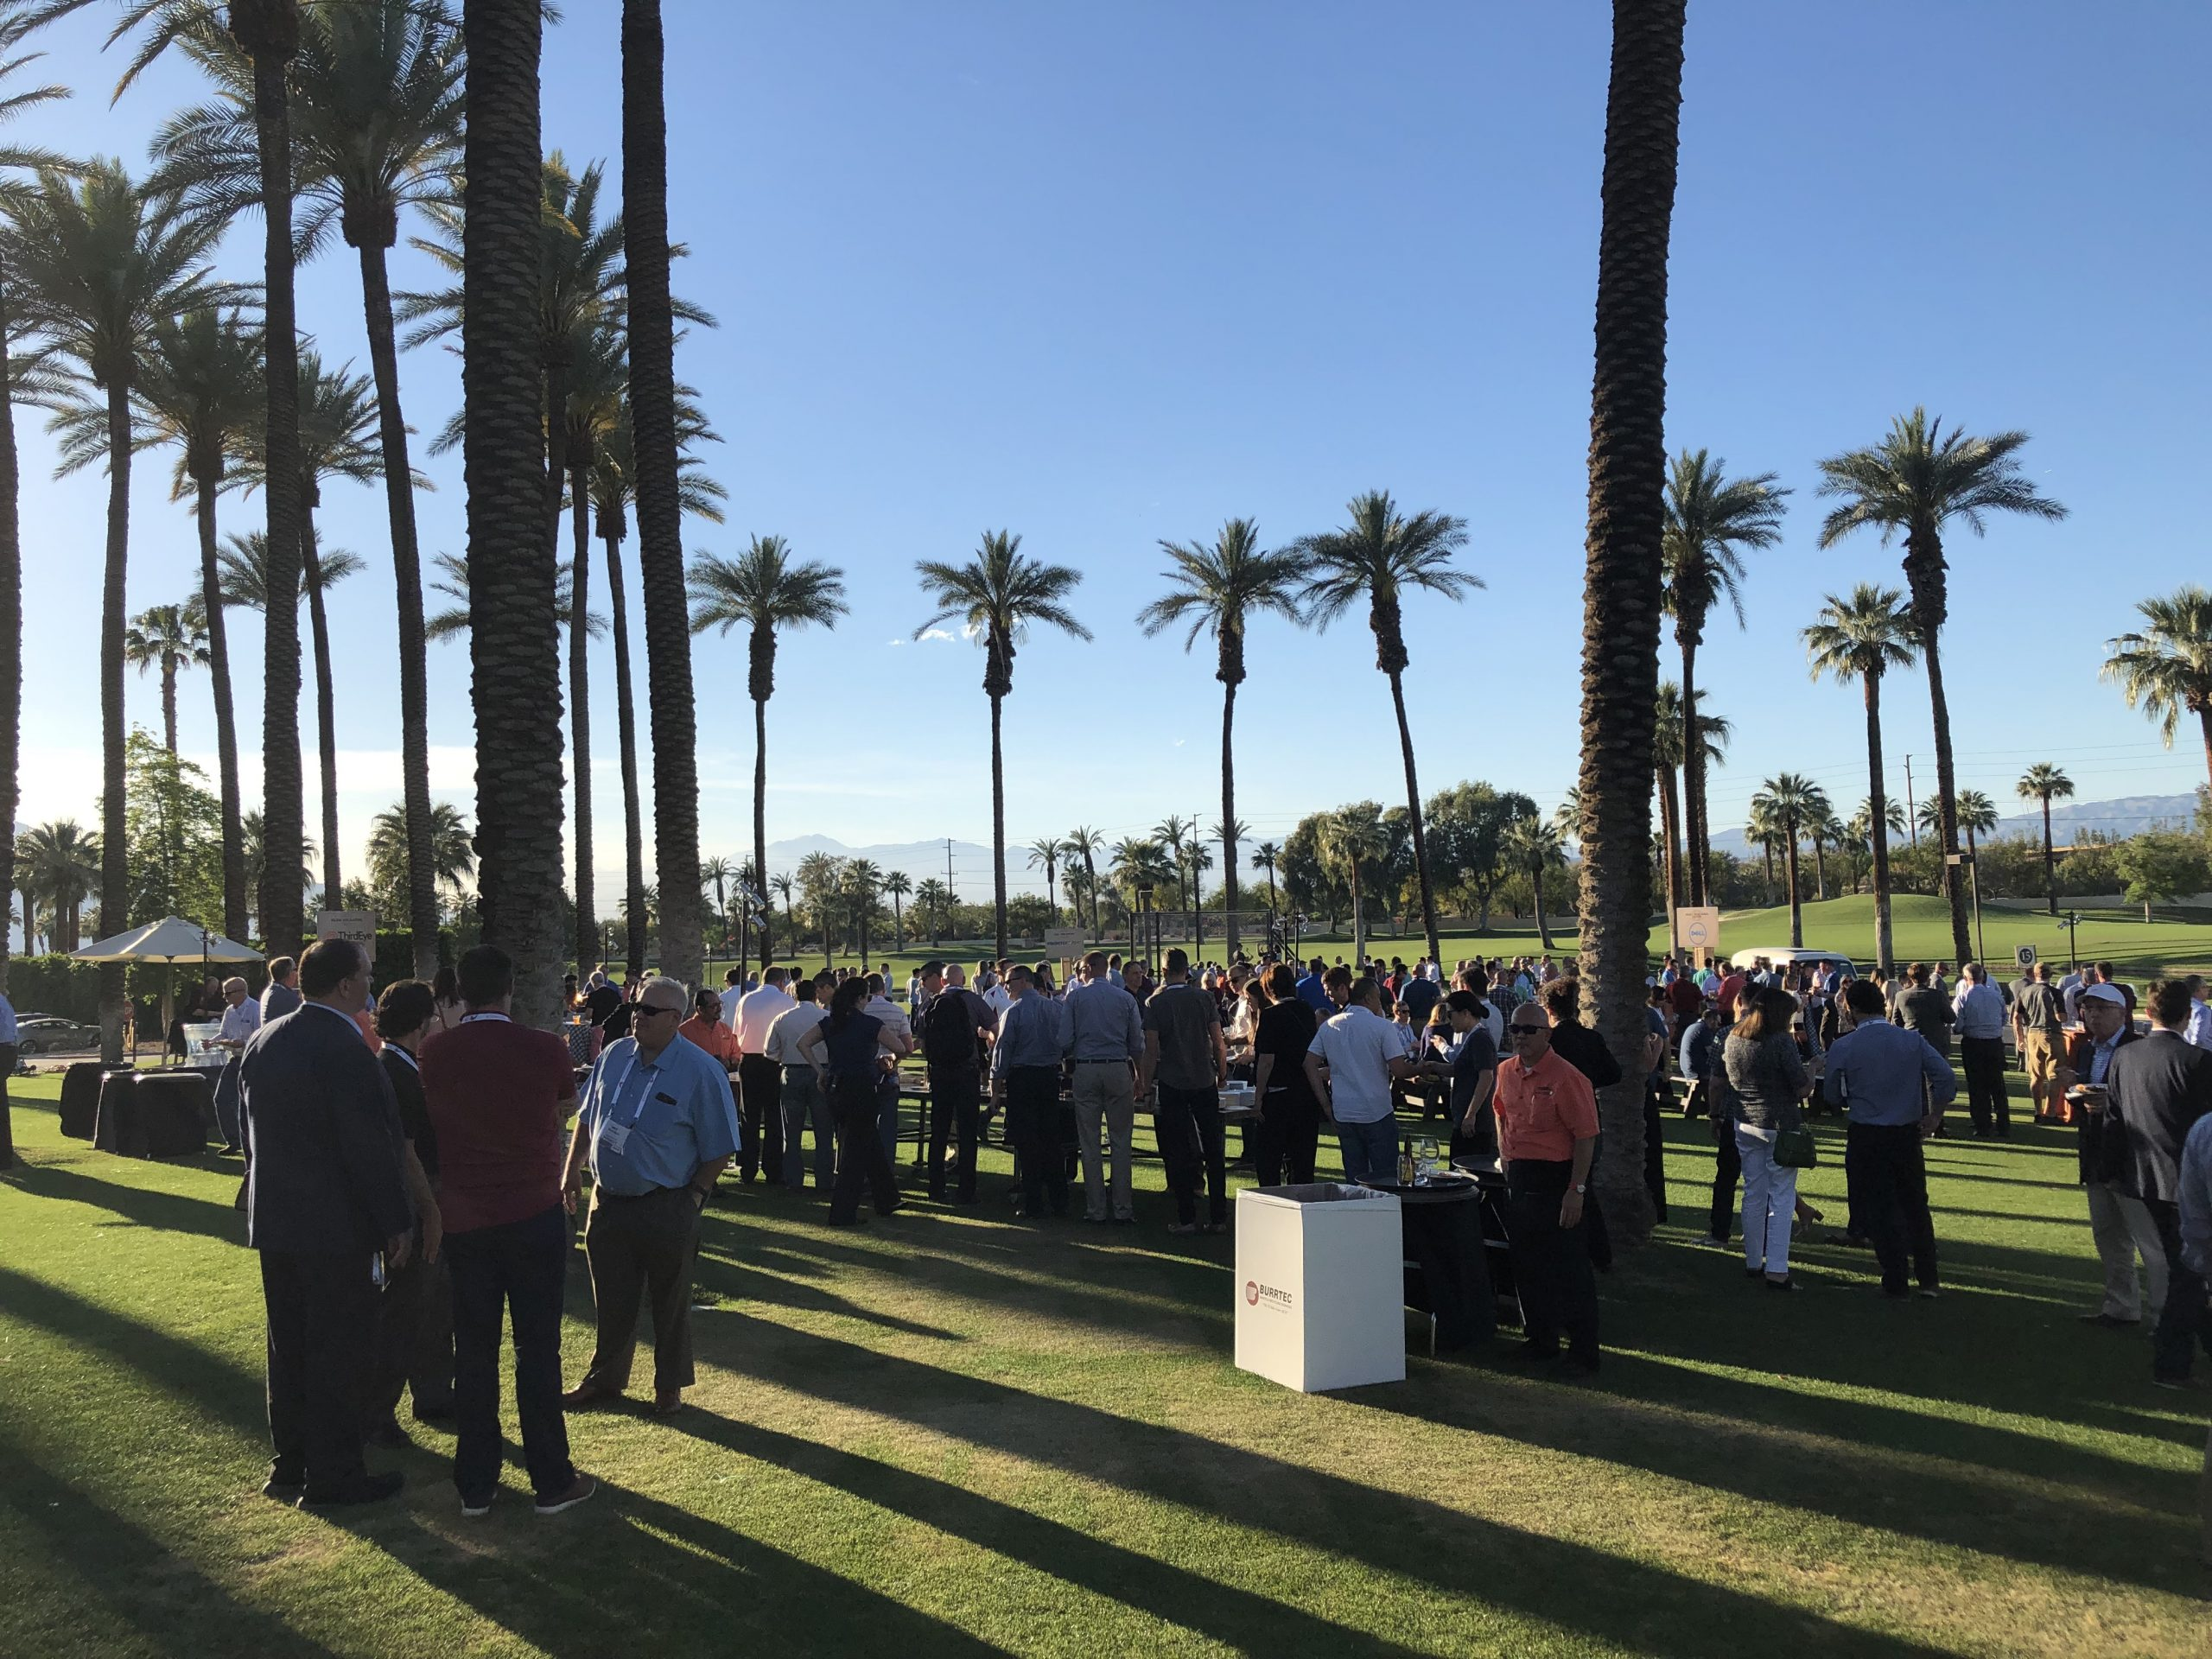 event participants networking and bonding at JW Marriott Desert Spring Resort's west lawn